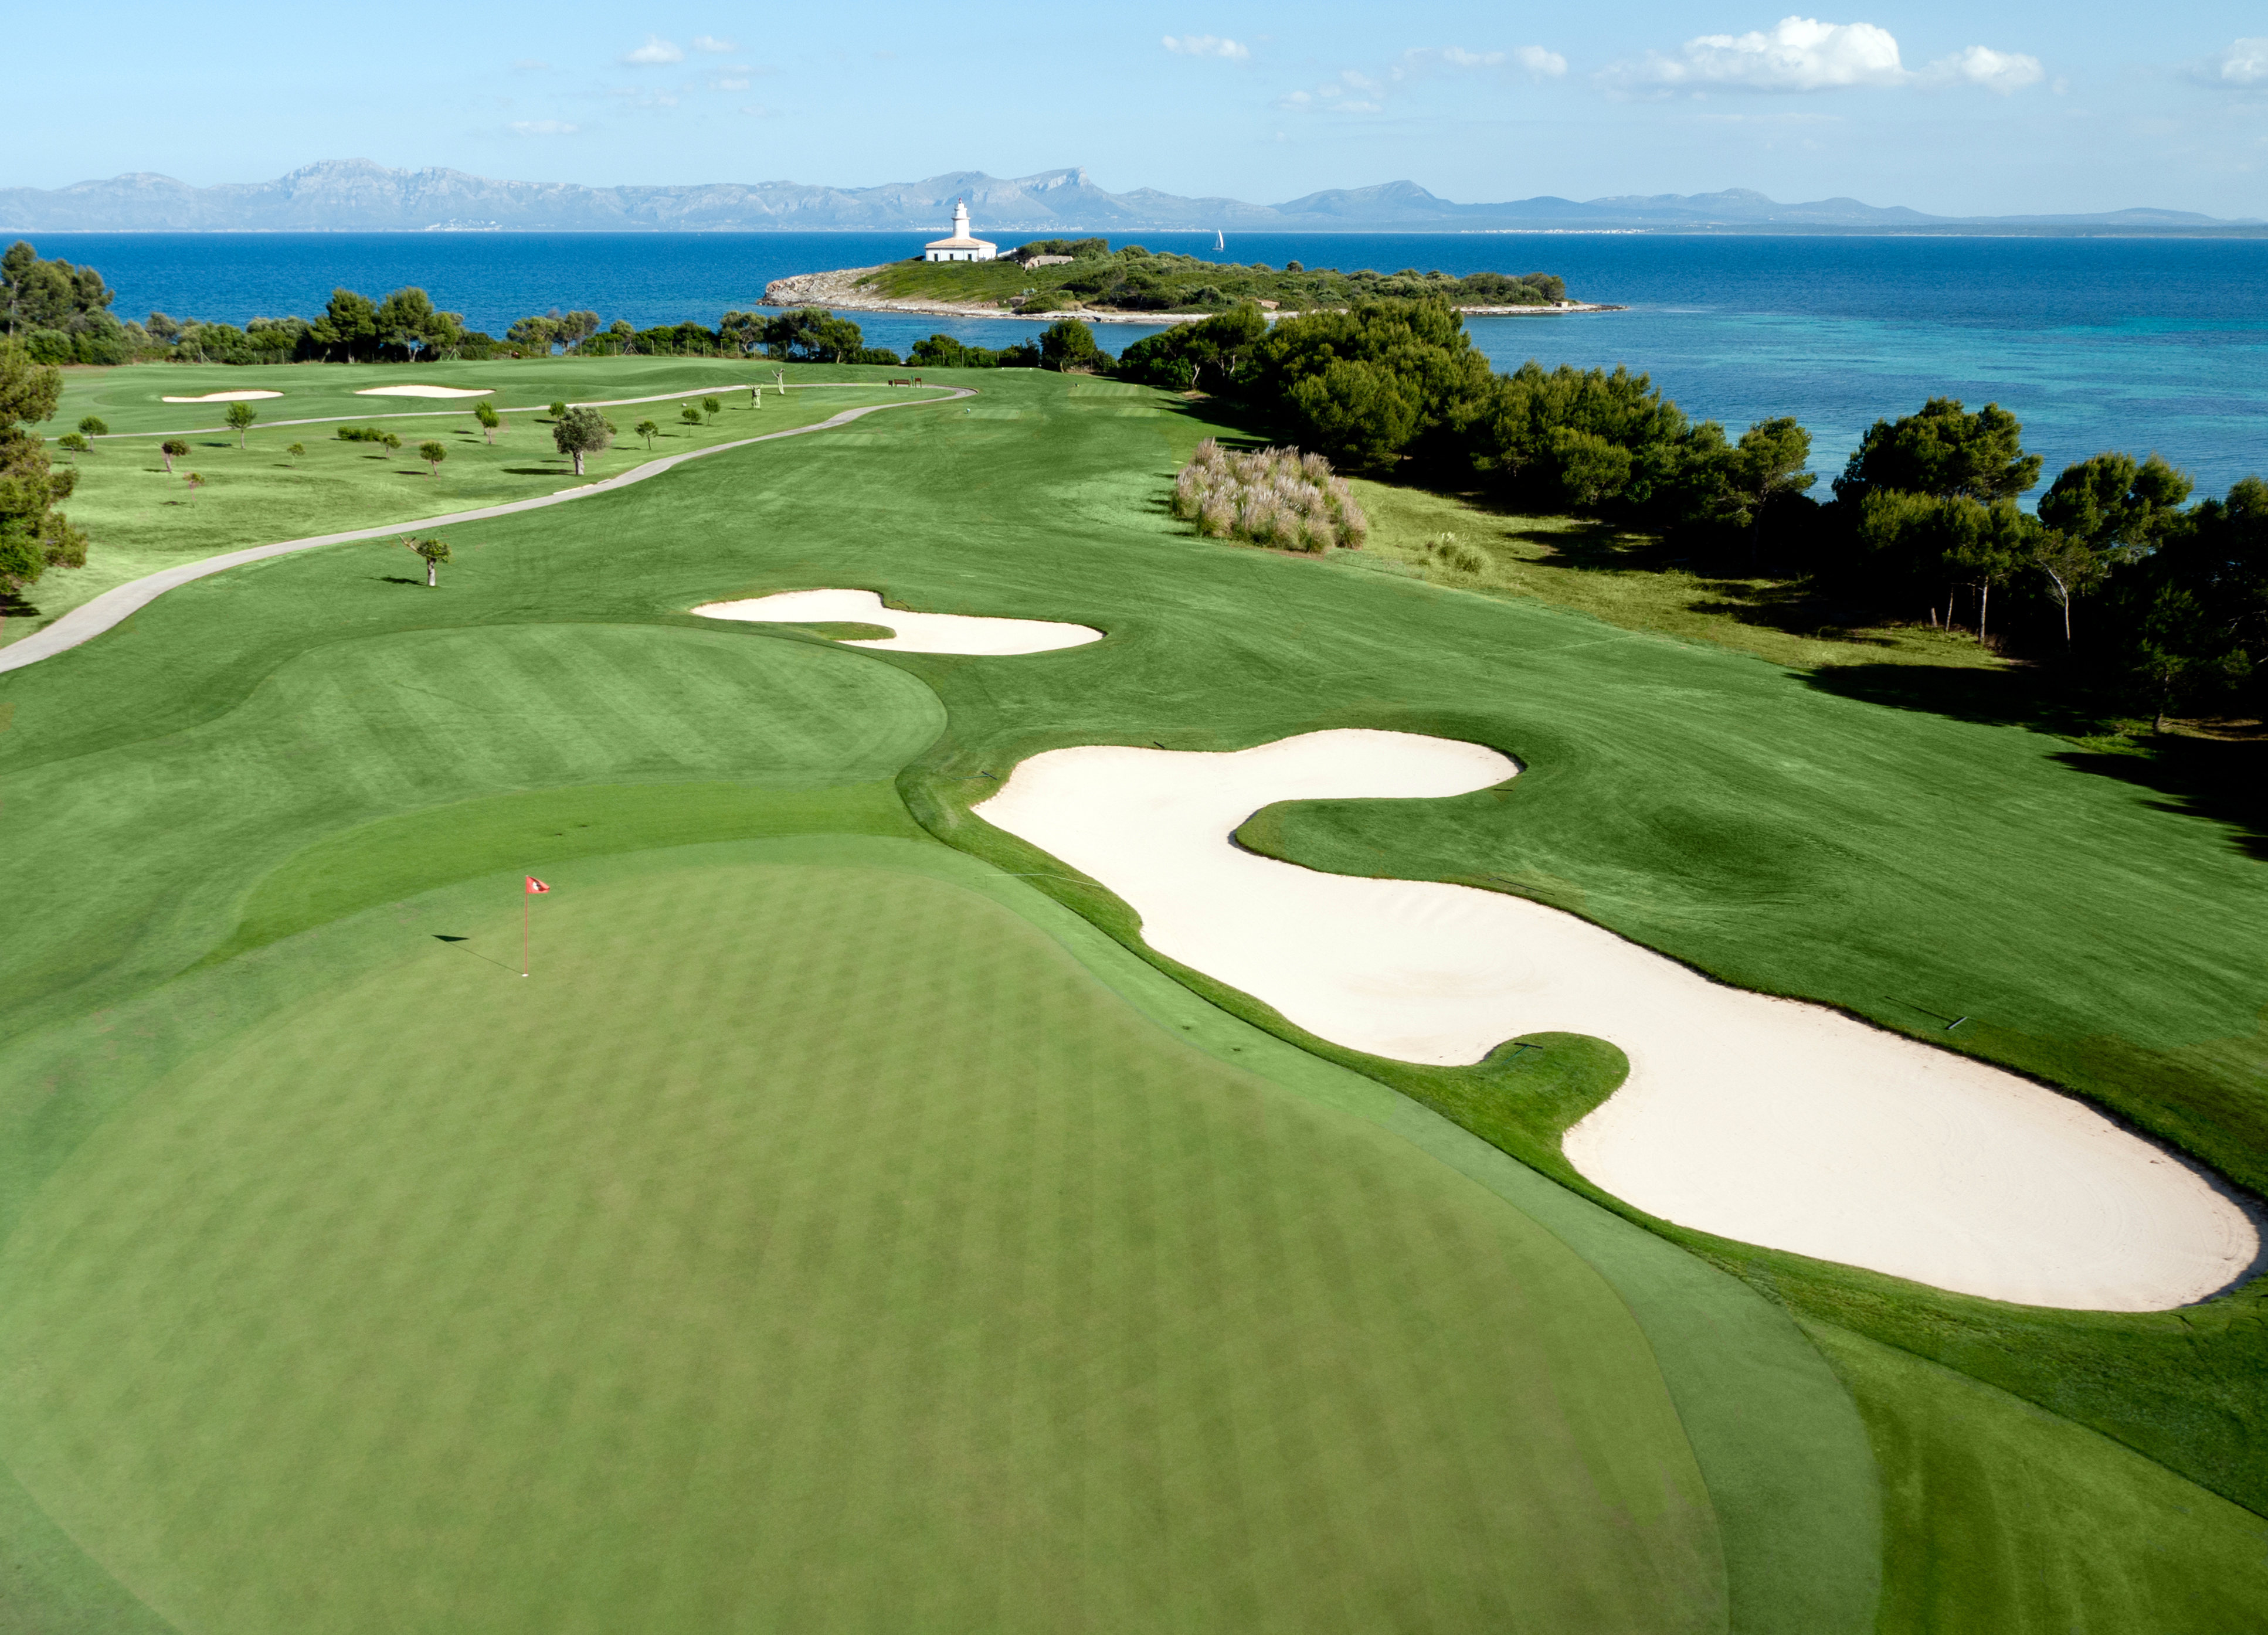 The par-three 17th green skirts the shore next to Bay d'Alcudia